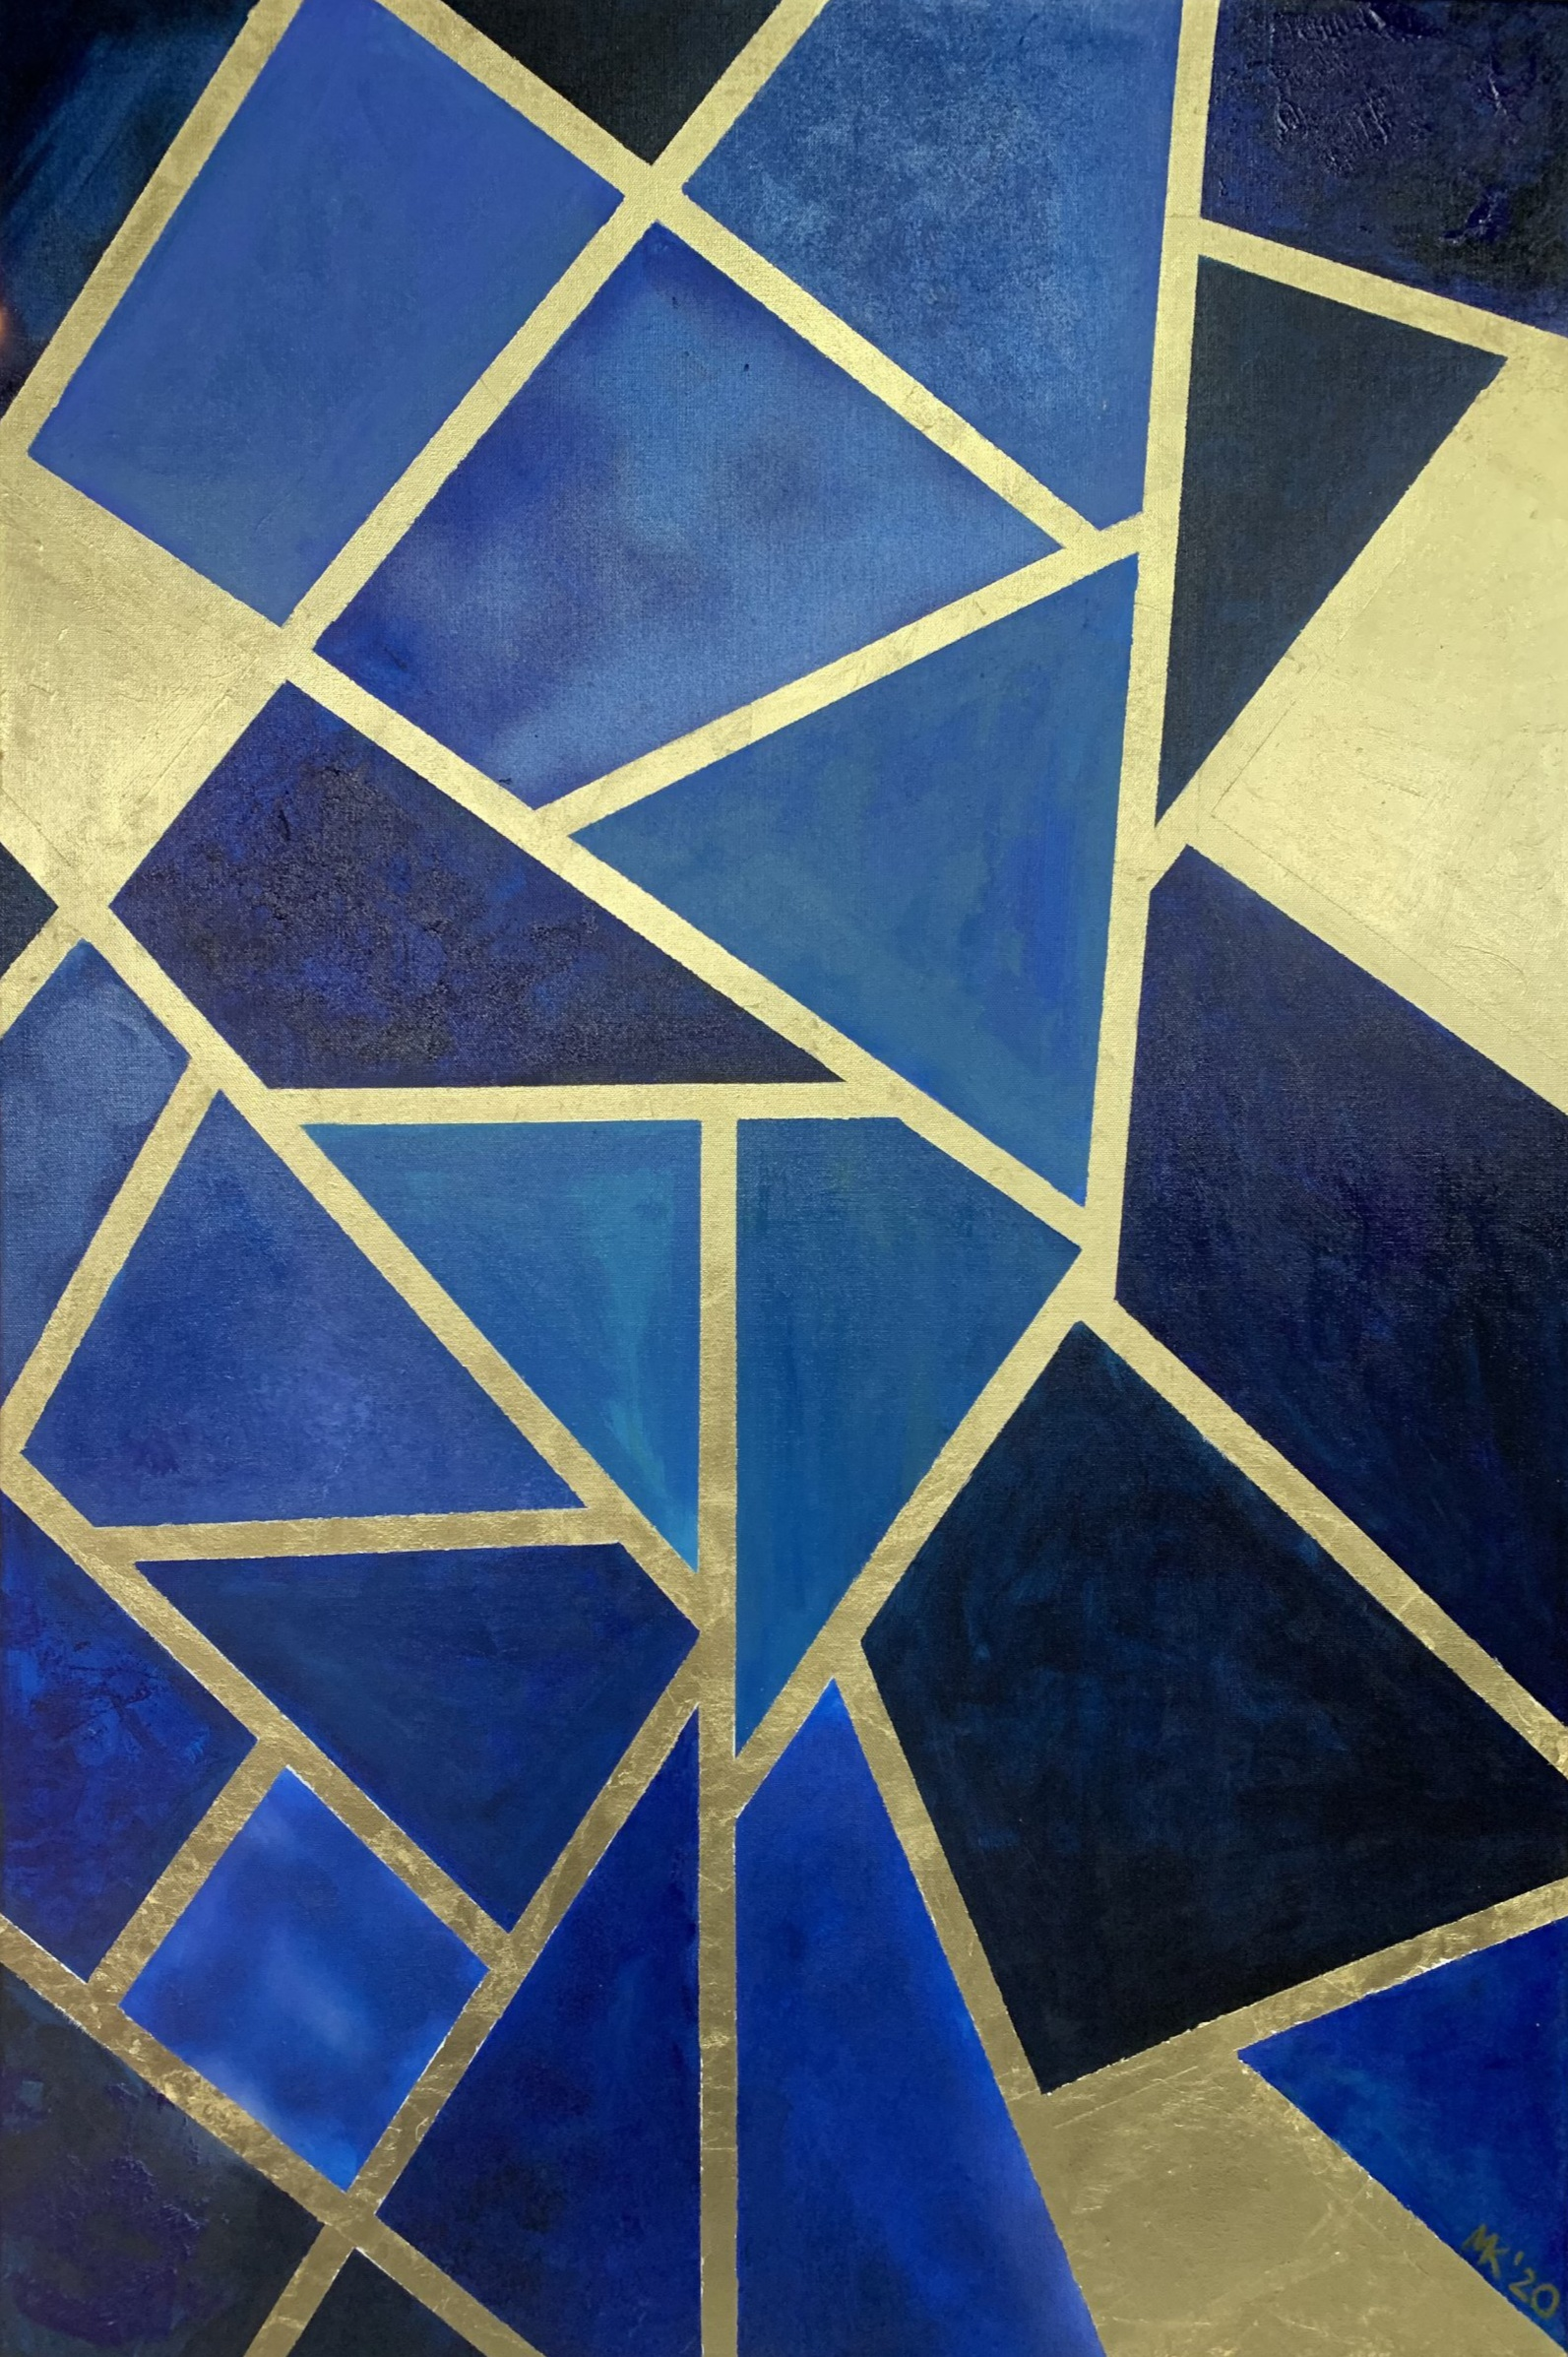 Blue-gold abstraction